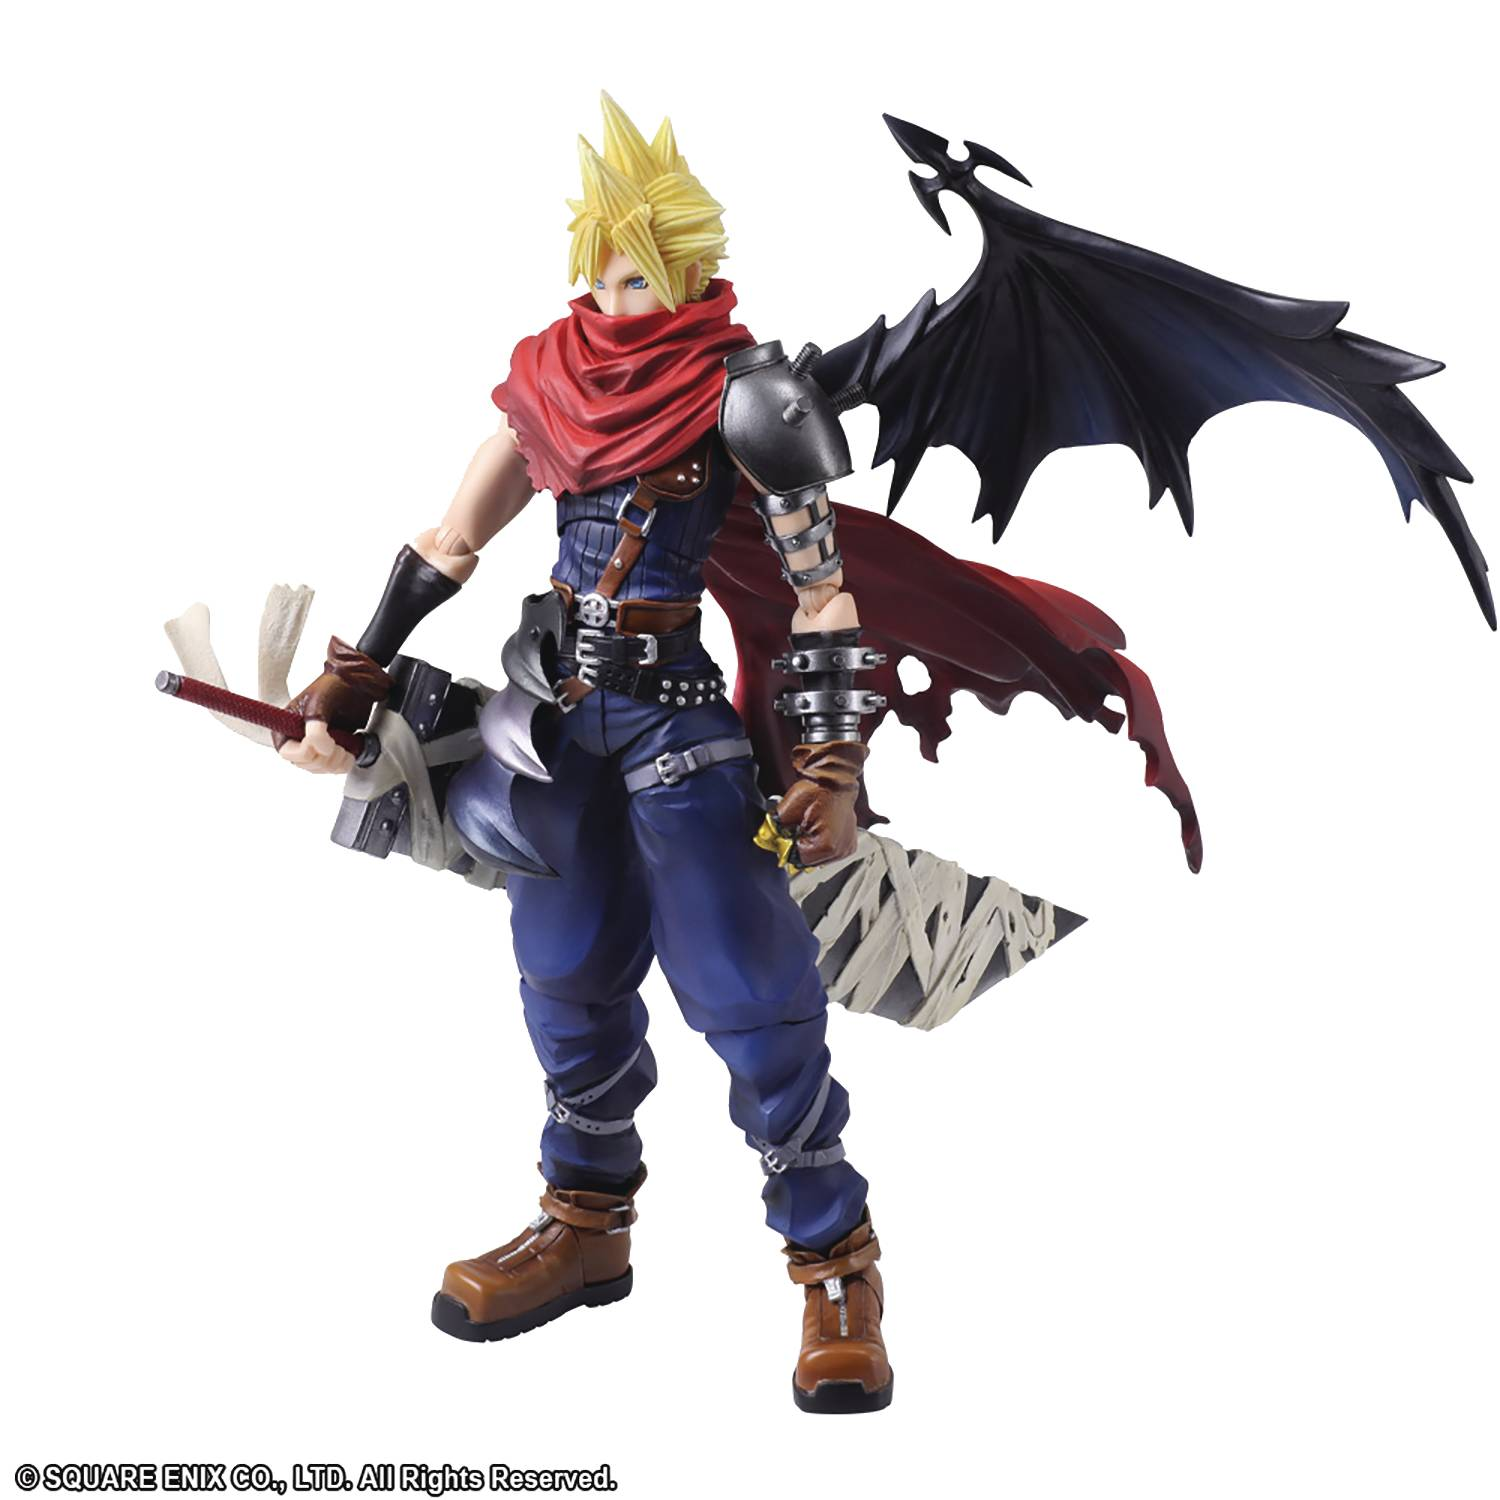 FINAL FANTASY BRING ARTS CLOUD STRIFE ANOTHER FORM VAR AF